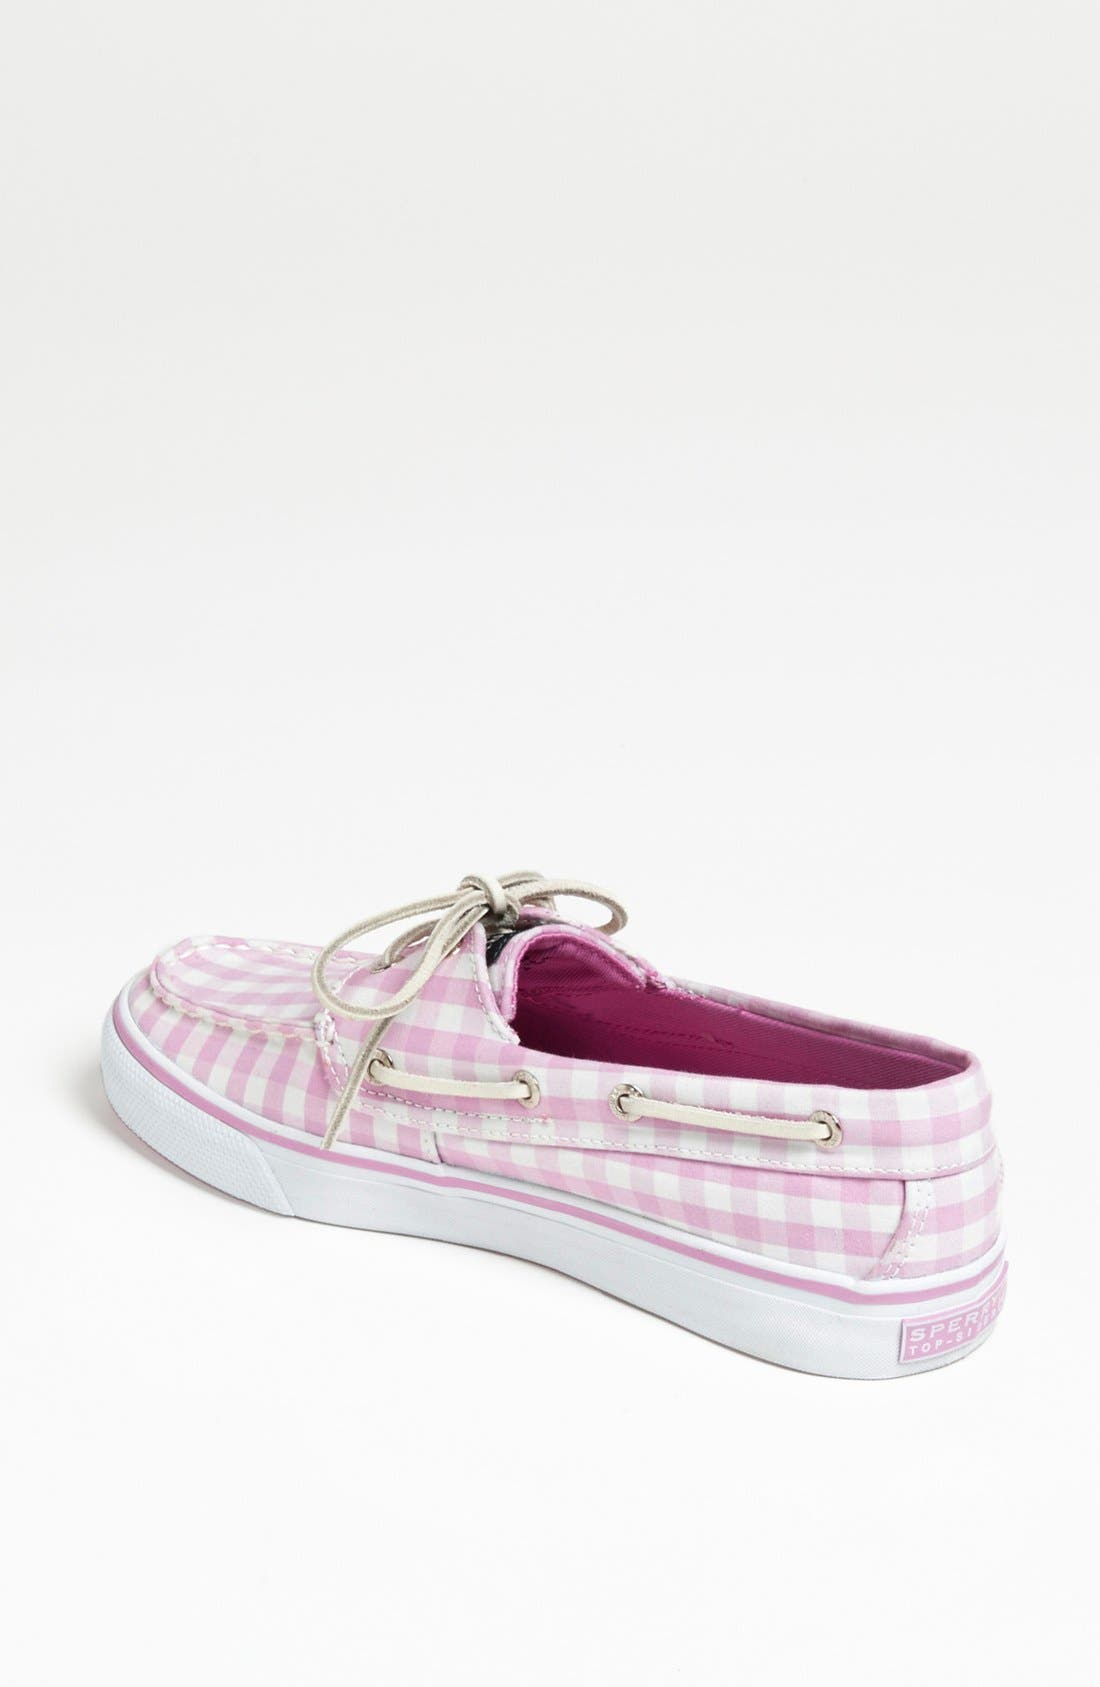 Alternate Image 2  - Sperry Top-Sider® 'Bahama' Boat Shoe (Online Only)